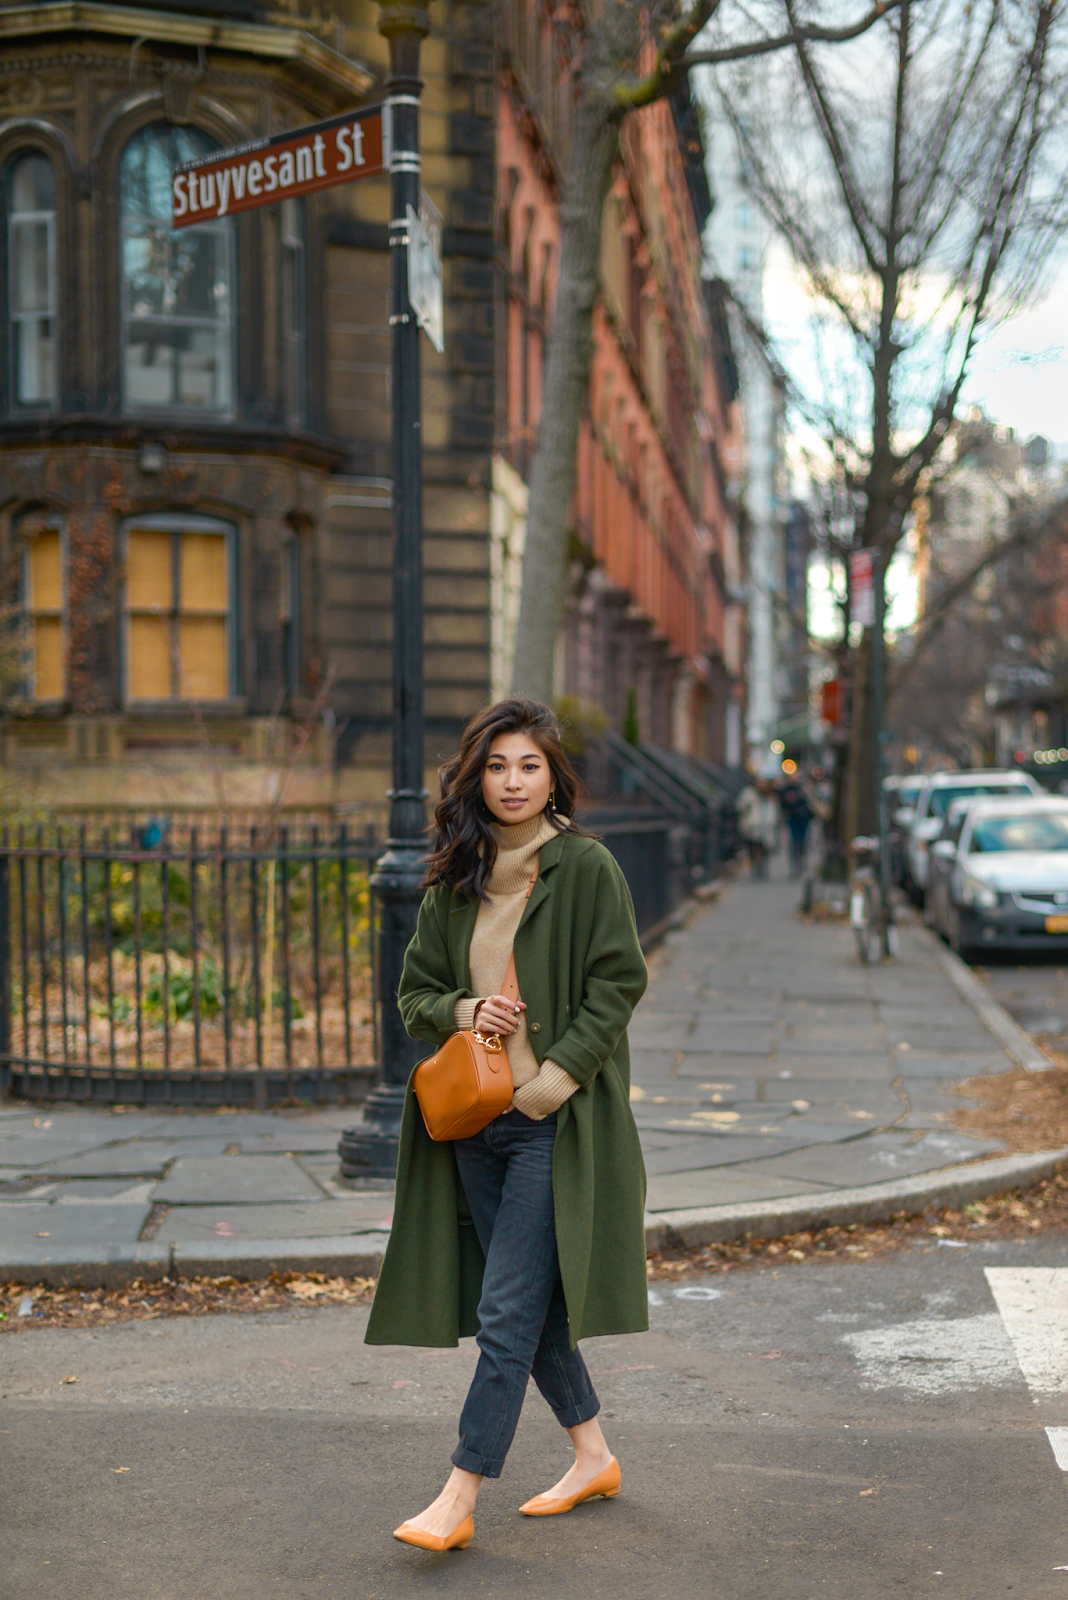 New York winter style, famous New York photo spot, olive and camel outfit, fall outfits for NYC travel, iconic New York spots for photographs, casual NYC street style, FOREVERVANNY Style, Tokyo and New York Fashion Blogger, Van Le Fashion Blog - December Again / 122018